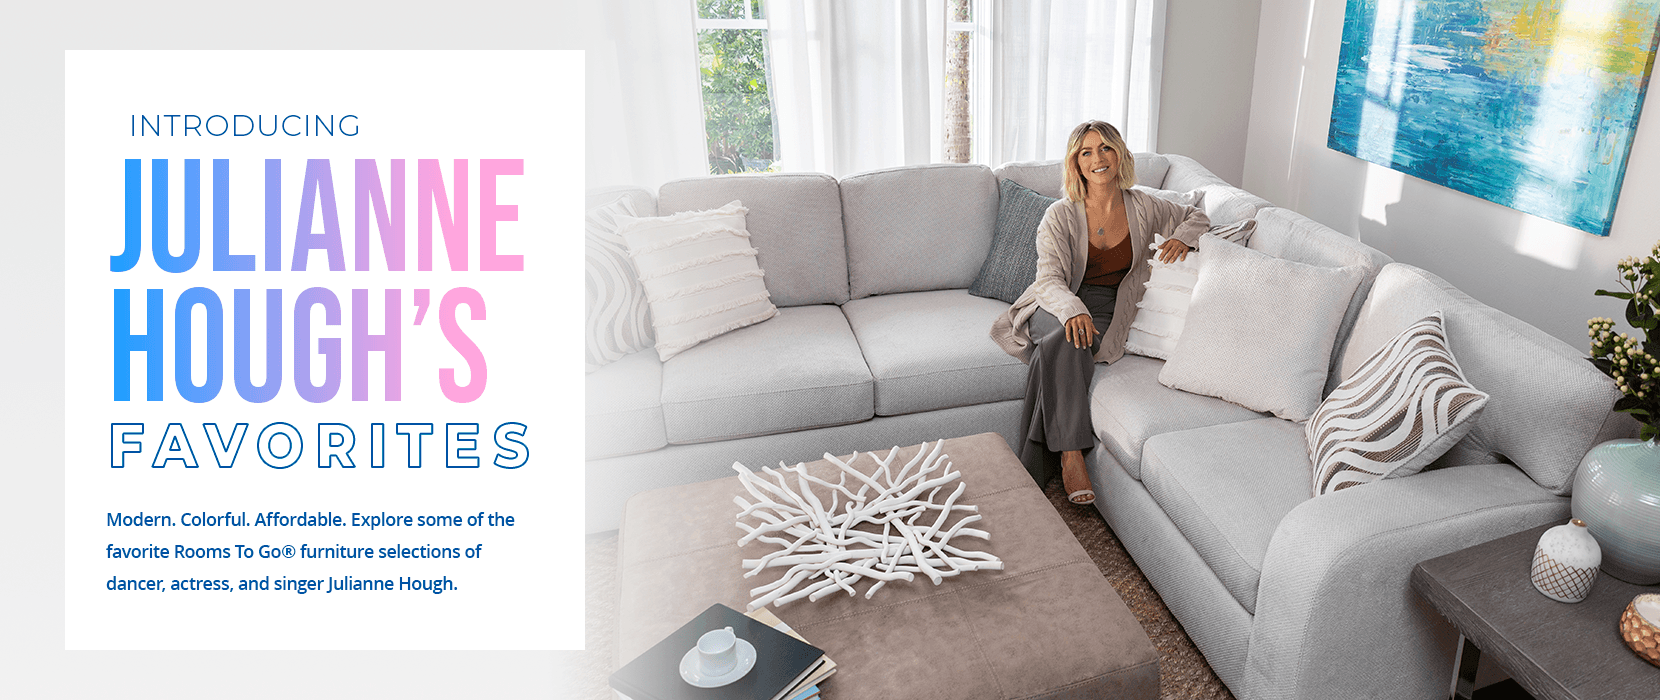 introducing julianne hough's favorites. modern. colorful. affordable. explore some of the favorite Rooms To Go furniture selections of dancer, actress, and singer Julianne Hough.